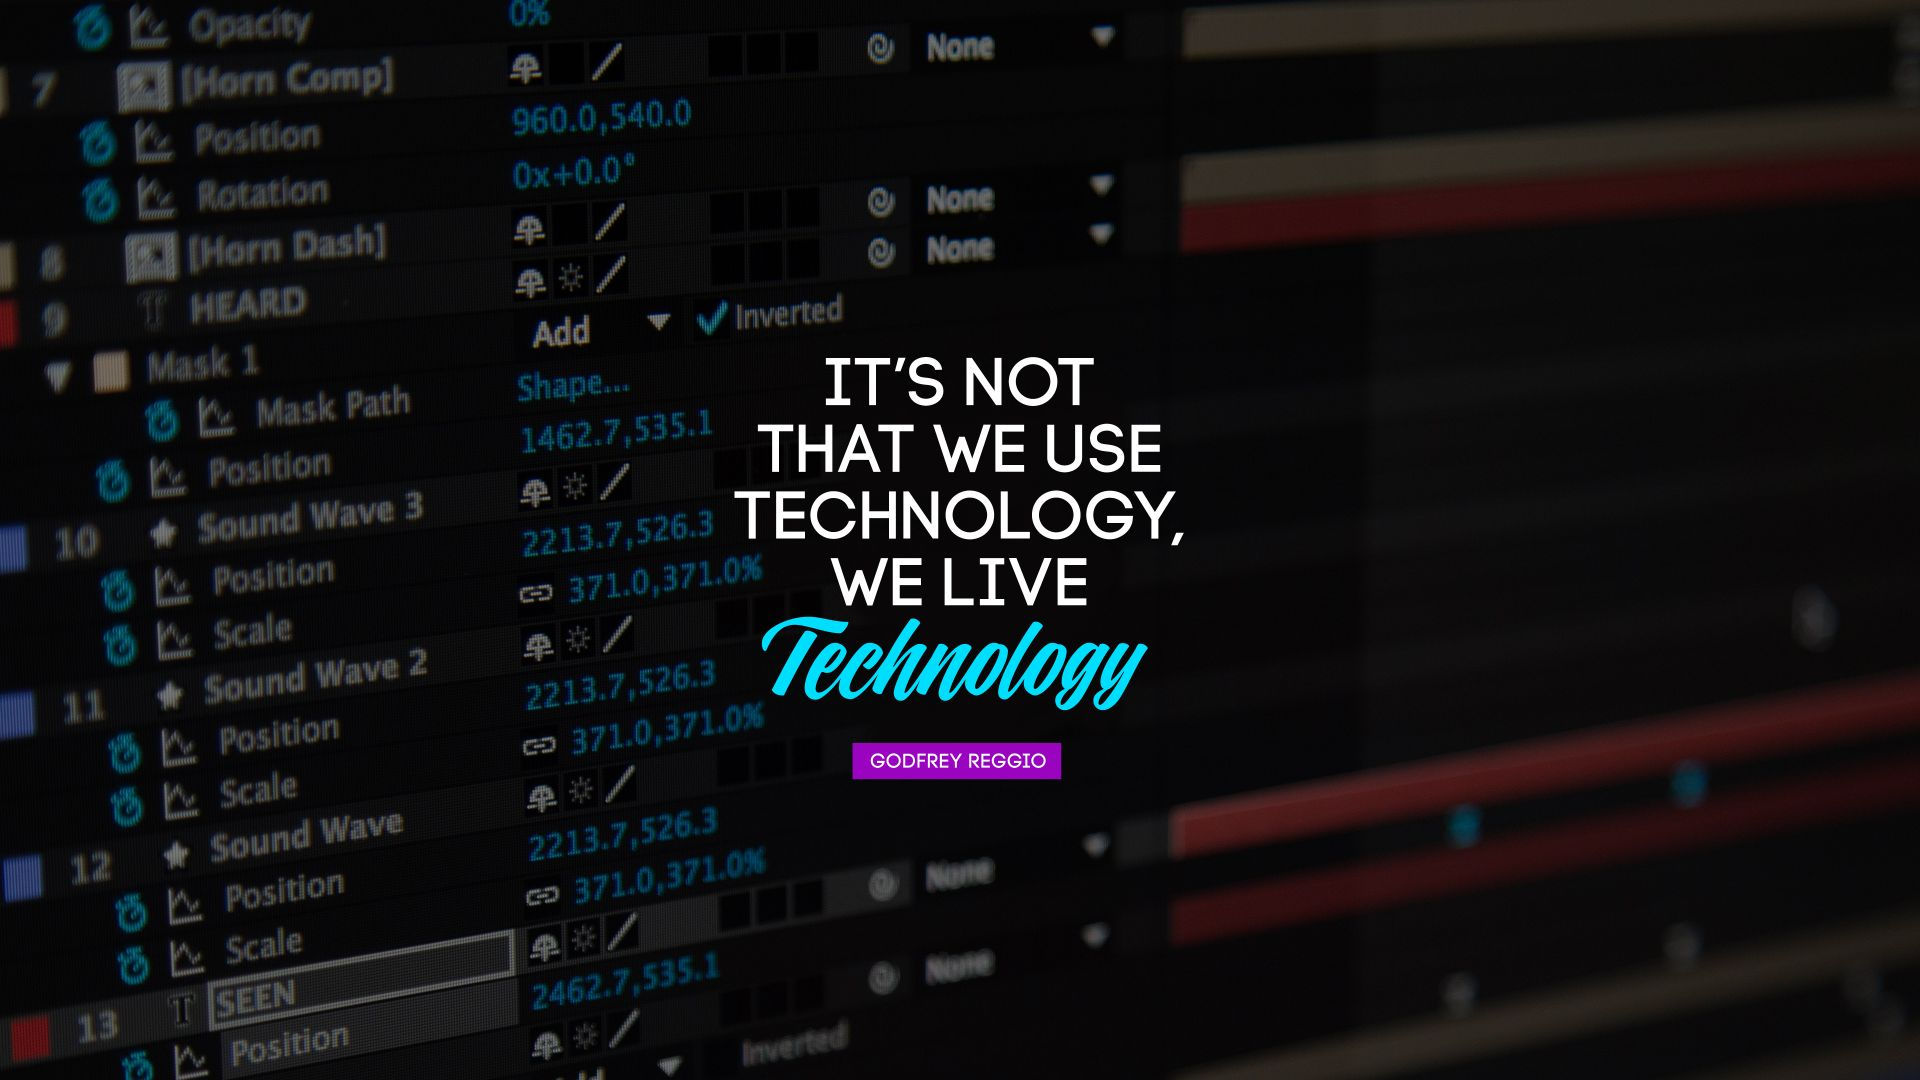 It's not that we use technology, we live technology. - Quote by Godfrey Reggio